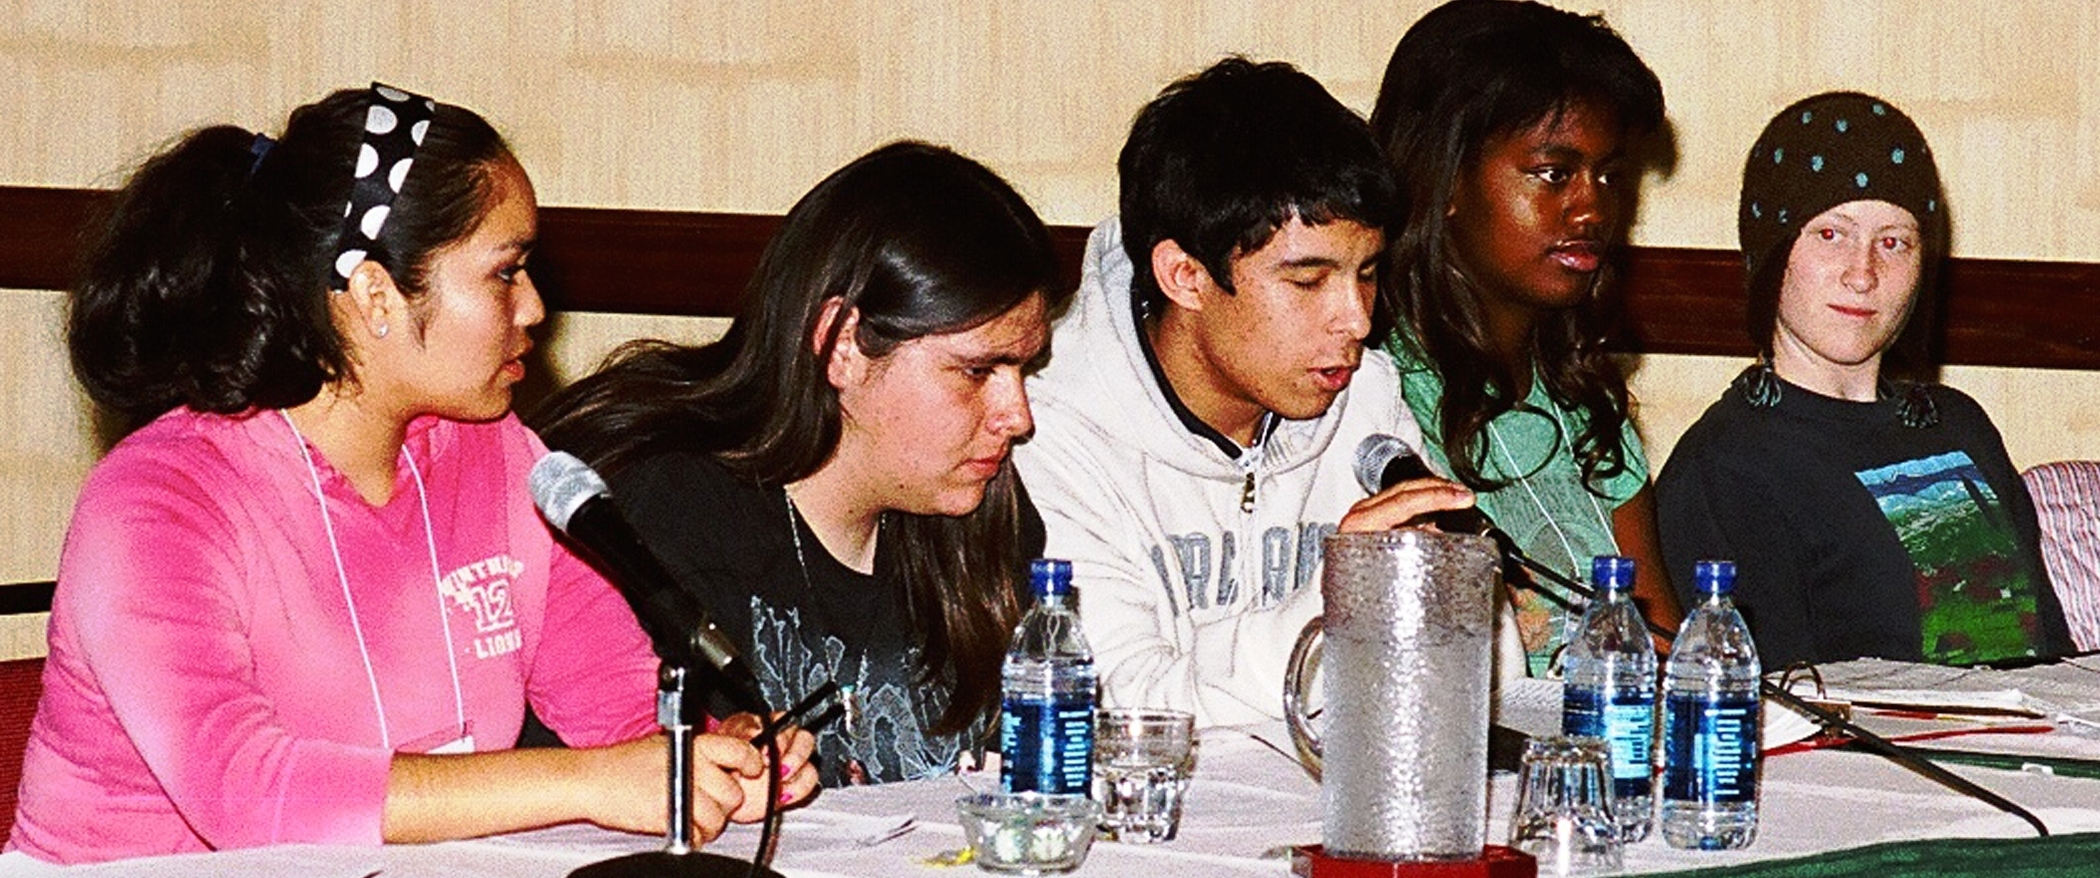 2007_Quivera_Conference_-_Youth_Panels_(4).jpg